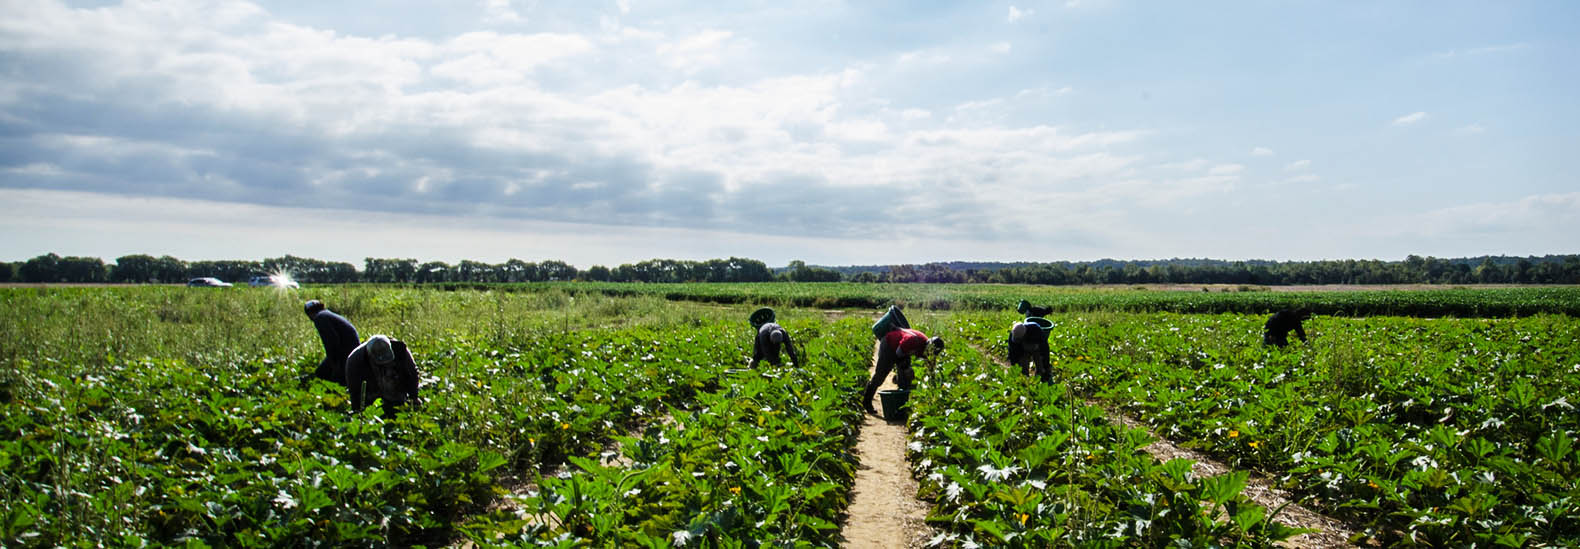 Extreme heat pushes Biden administration to pursue worker protections -